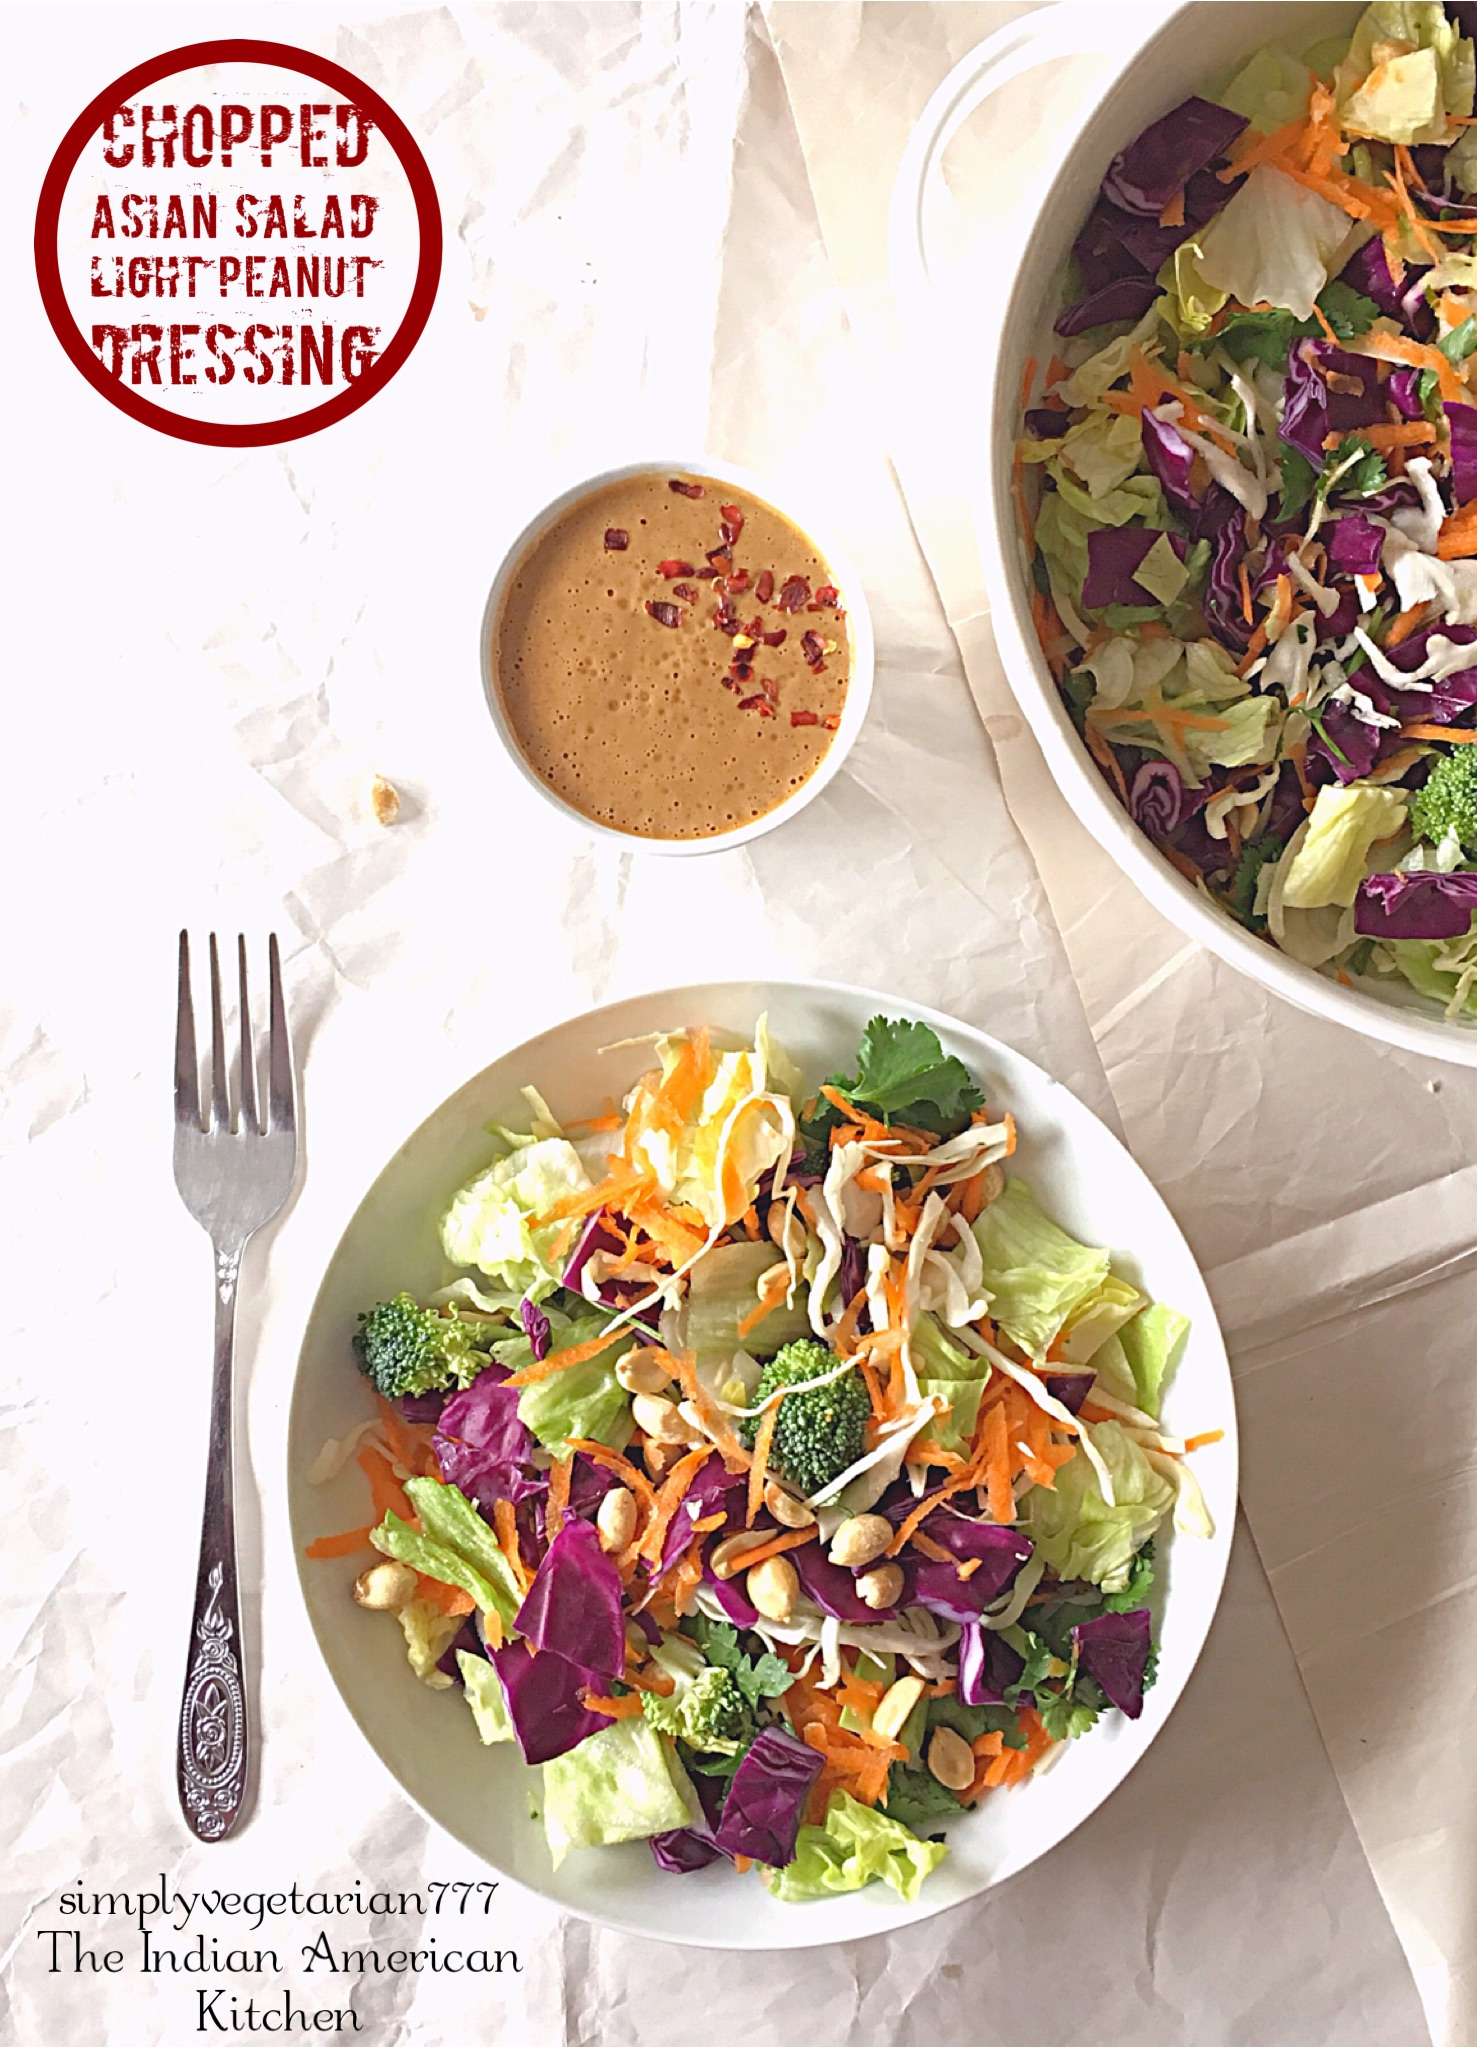 Chopped Asian Salad with Light Peanut Dressing is an easy salad recipe that is delicious, healthy and filling. It is better than the Cafe Salads. The Peanut Dressing is homemadeand is lighter than the store bought Salad Dressing. This salad makes a perfect lunch or a light meal to share with family and friends. #asiansalad #choppedsalad #salad #lunchideas #lightmeals #peanutdressing #lightsaladdressing #healthylunch #vegetarianmeals #vegetariansalad #vegansalad #glutenfreemeals #glutenfreesalad #veganasianrecipes #cafestylesalad #crunchysalad